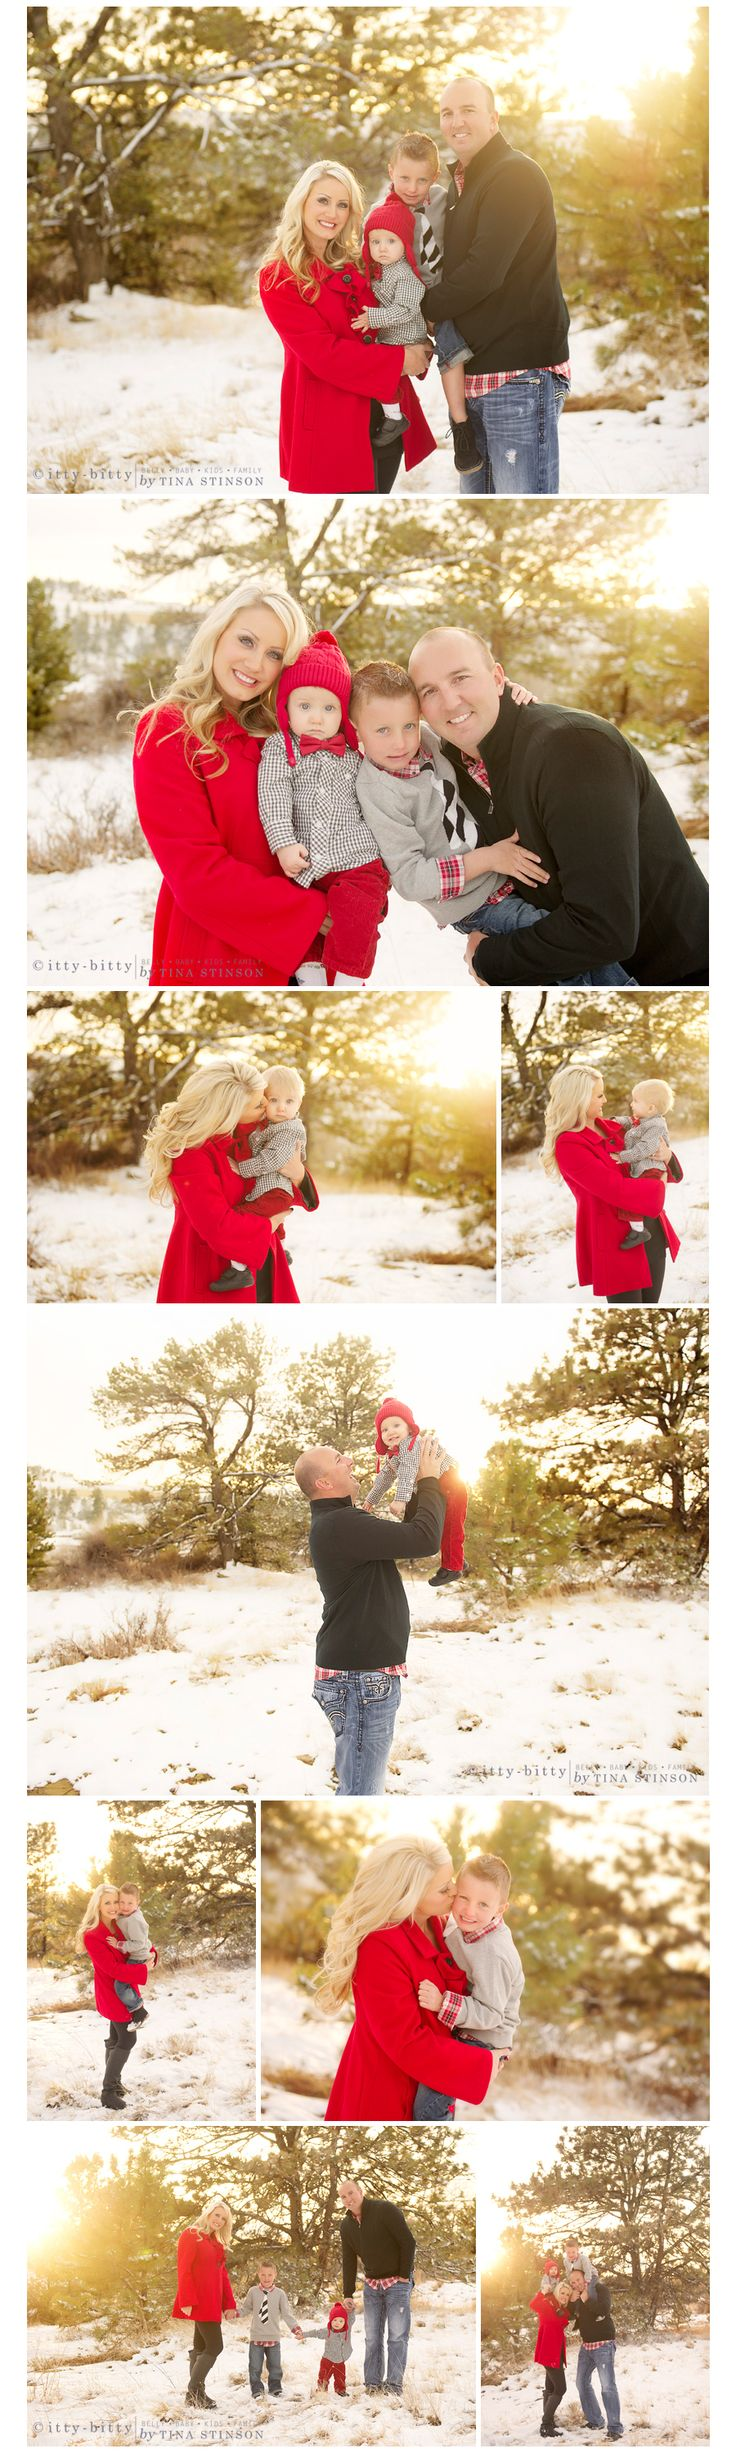 Outdoor winter family... I must get a red jacket